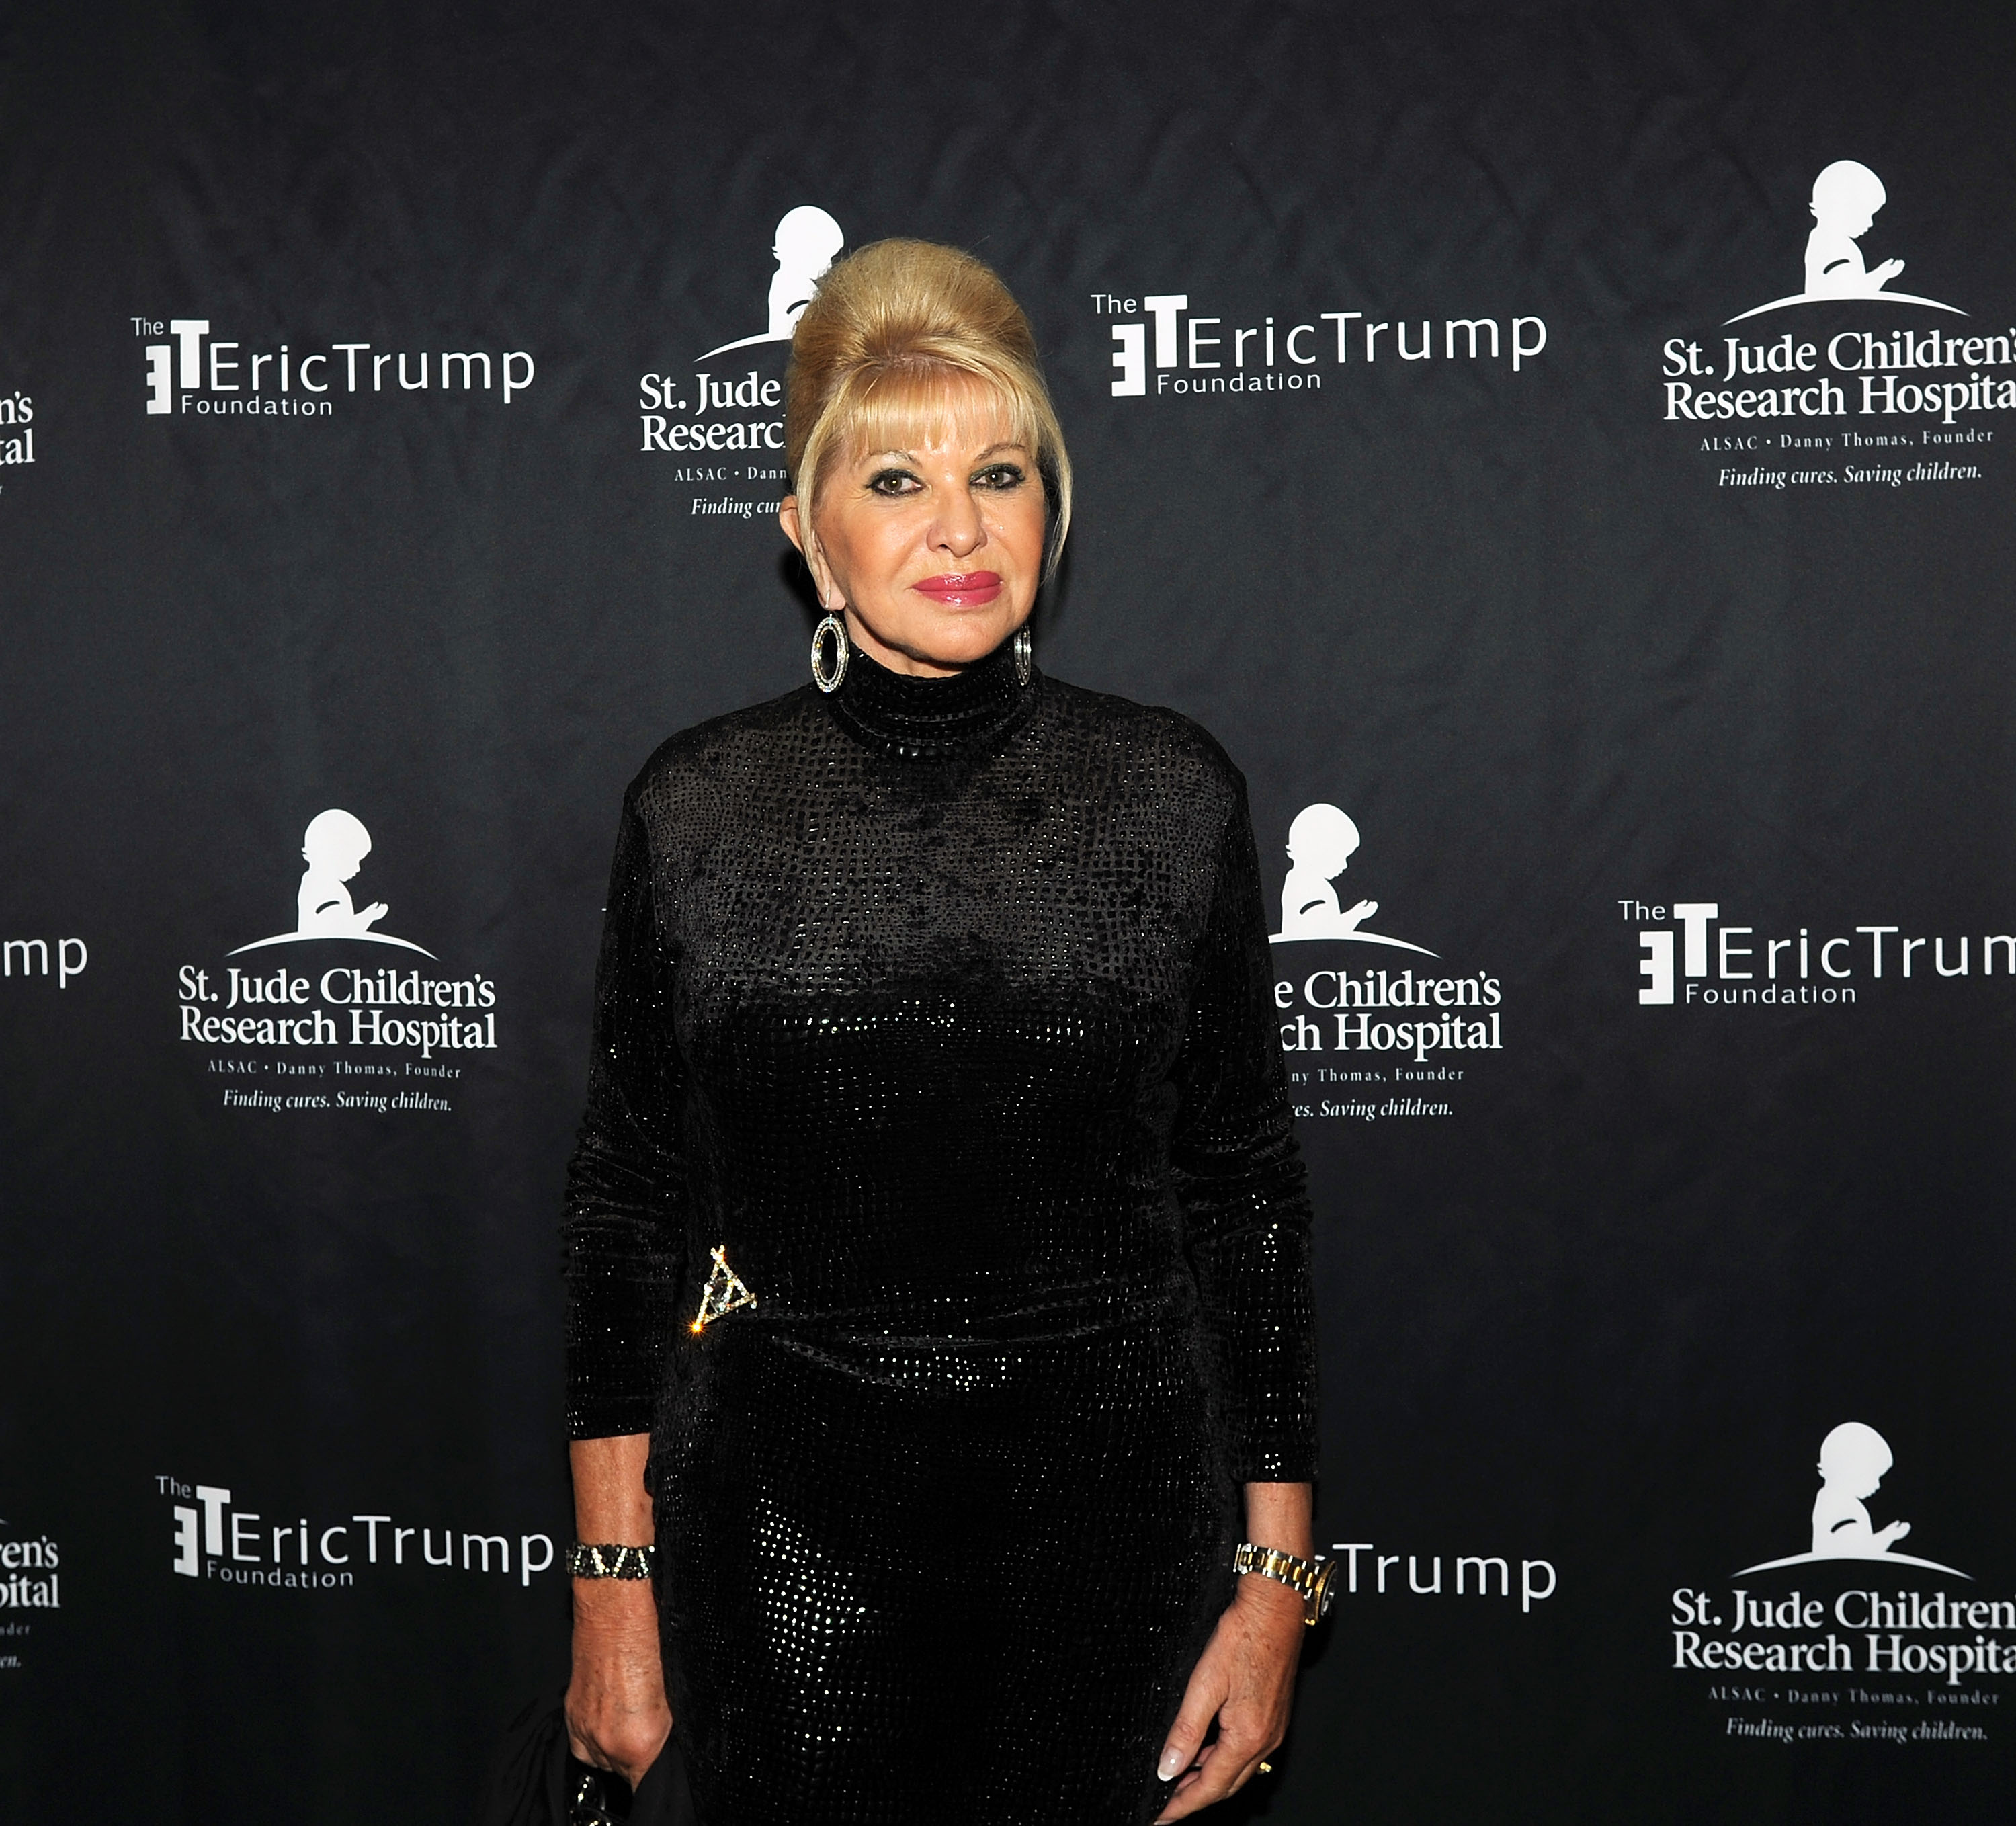 vana Trump attends the 9th Annual Eric Trump Foundation golf invitational at Trump National Golf Club Westchester on September 21, 2015 in Briarcliff Manor City